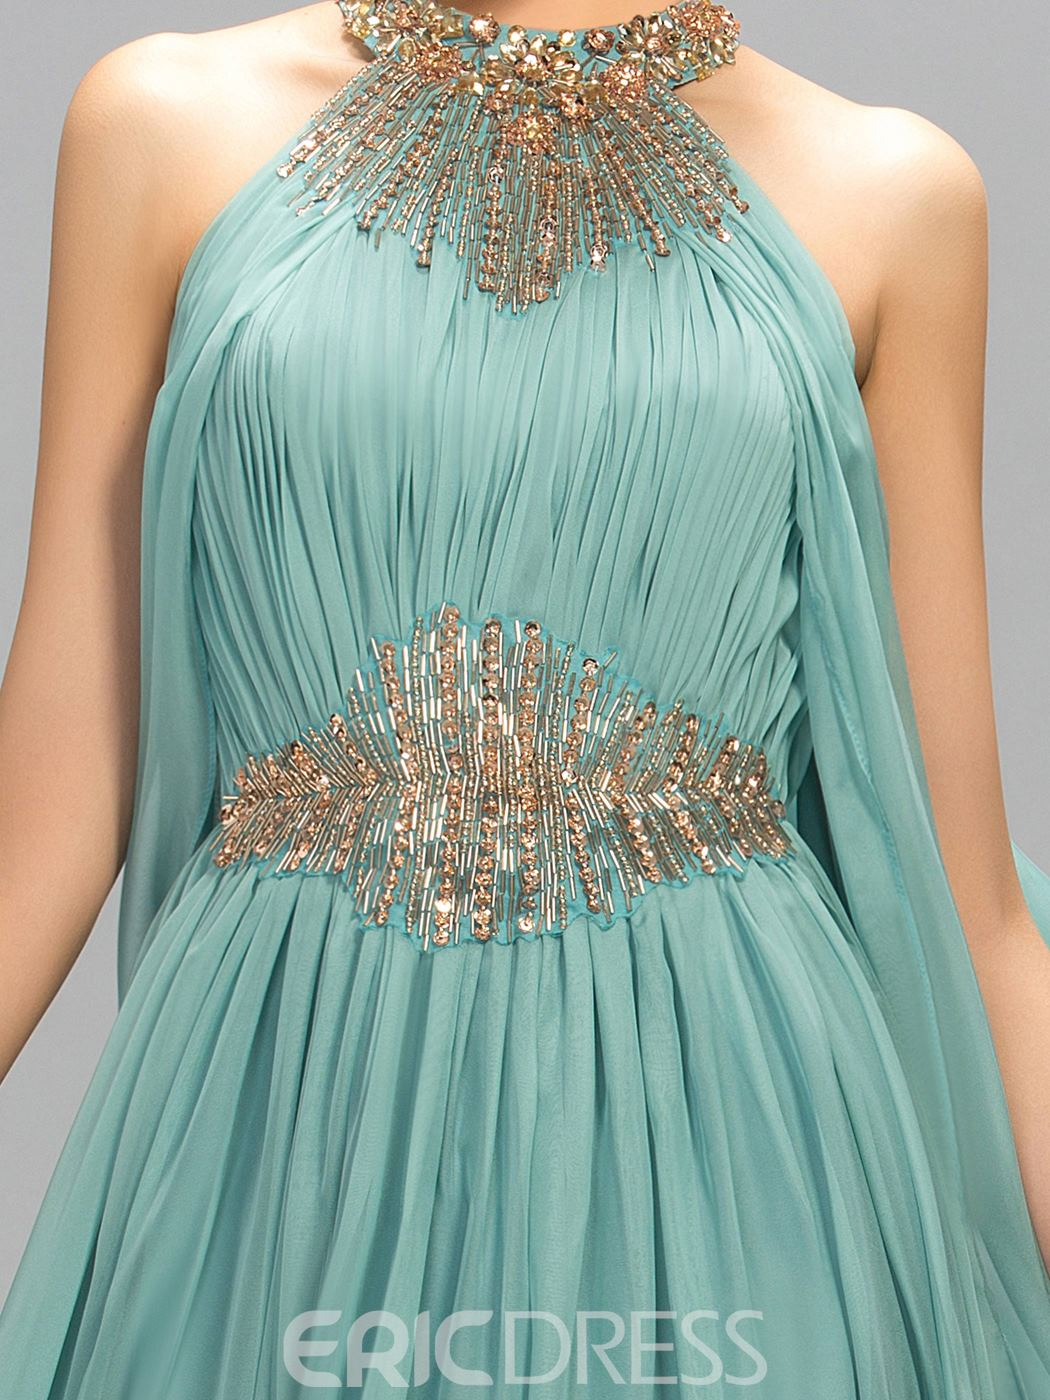 Ericdress Halter Ruffles A-Line Long Evening Dress With Beadings